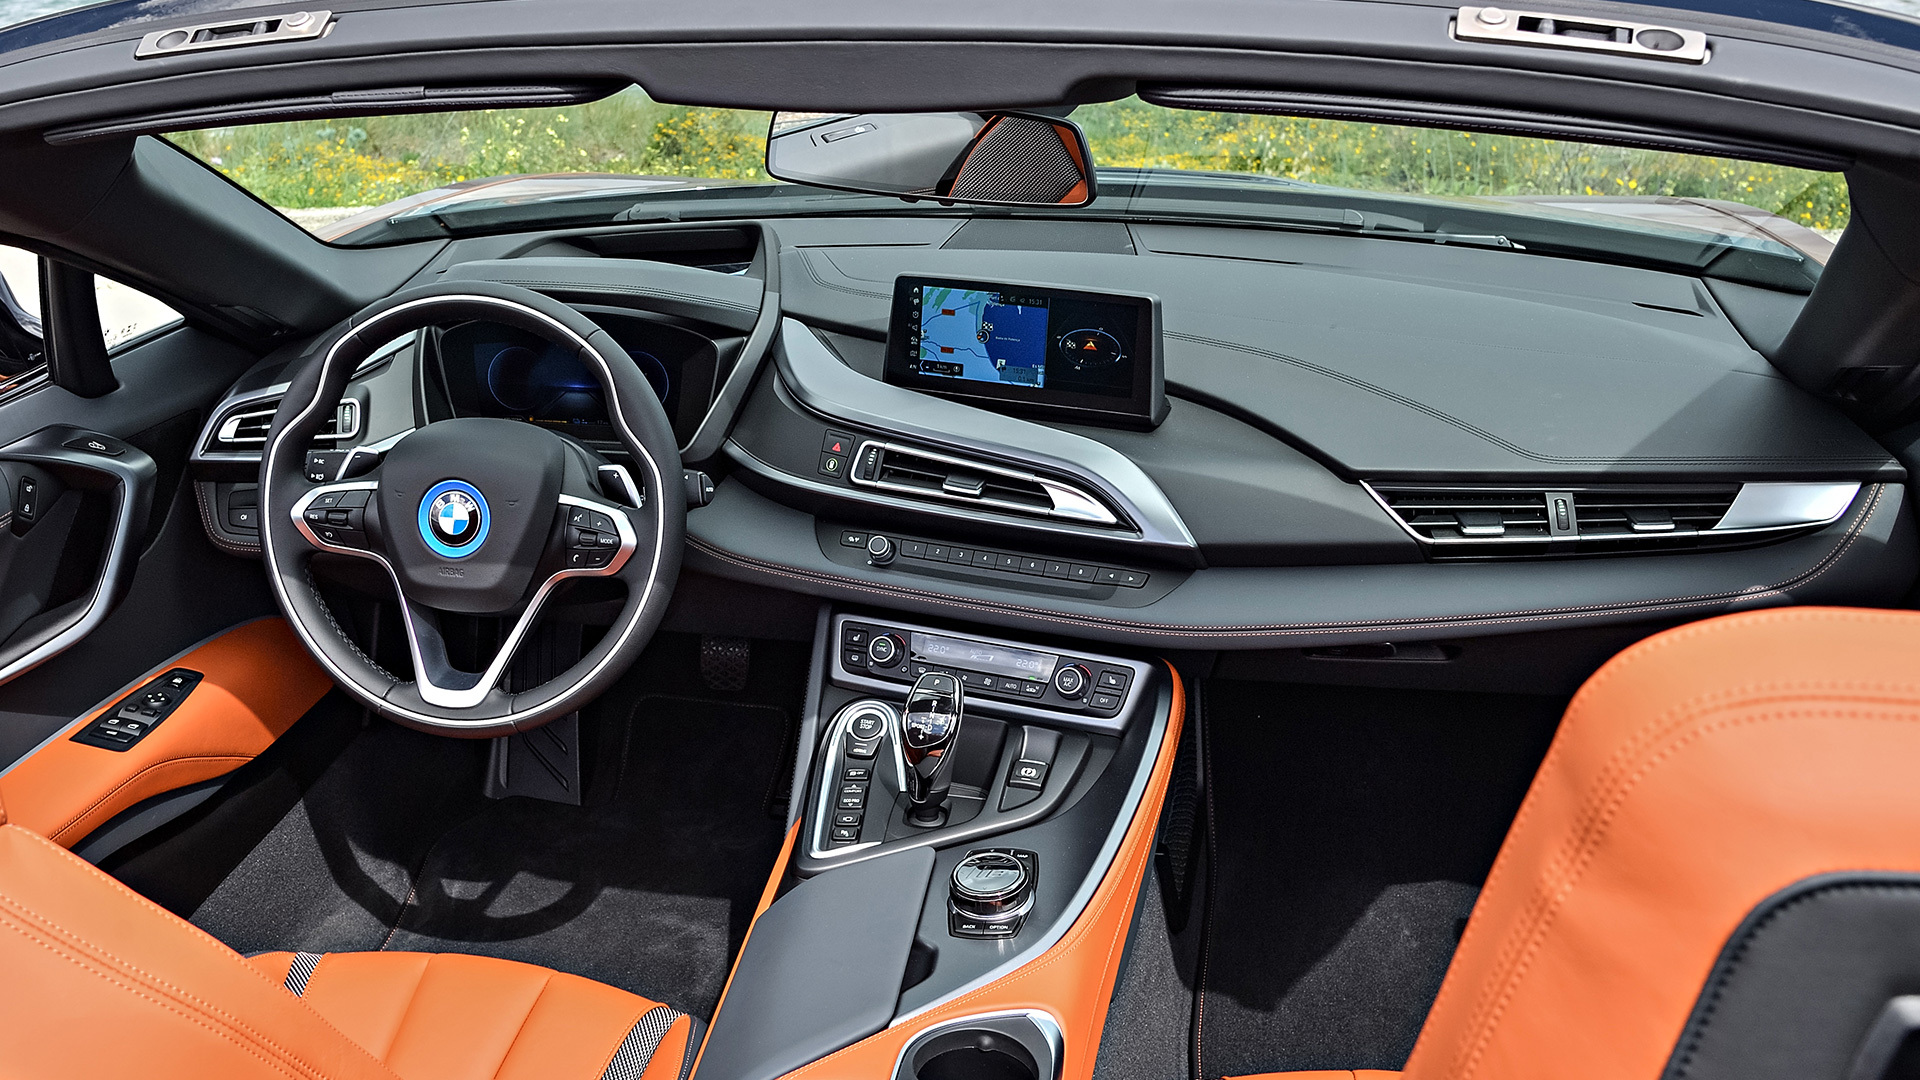 Bmw I8 2018 Roadster Interior Car Photos Overdrive